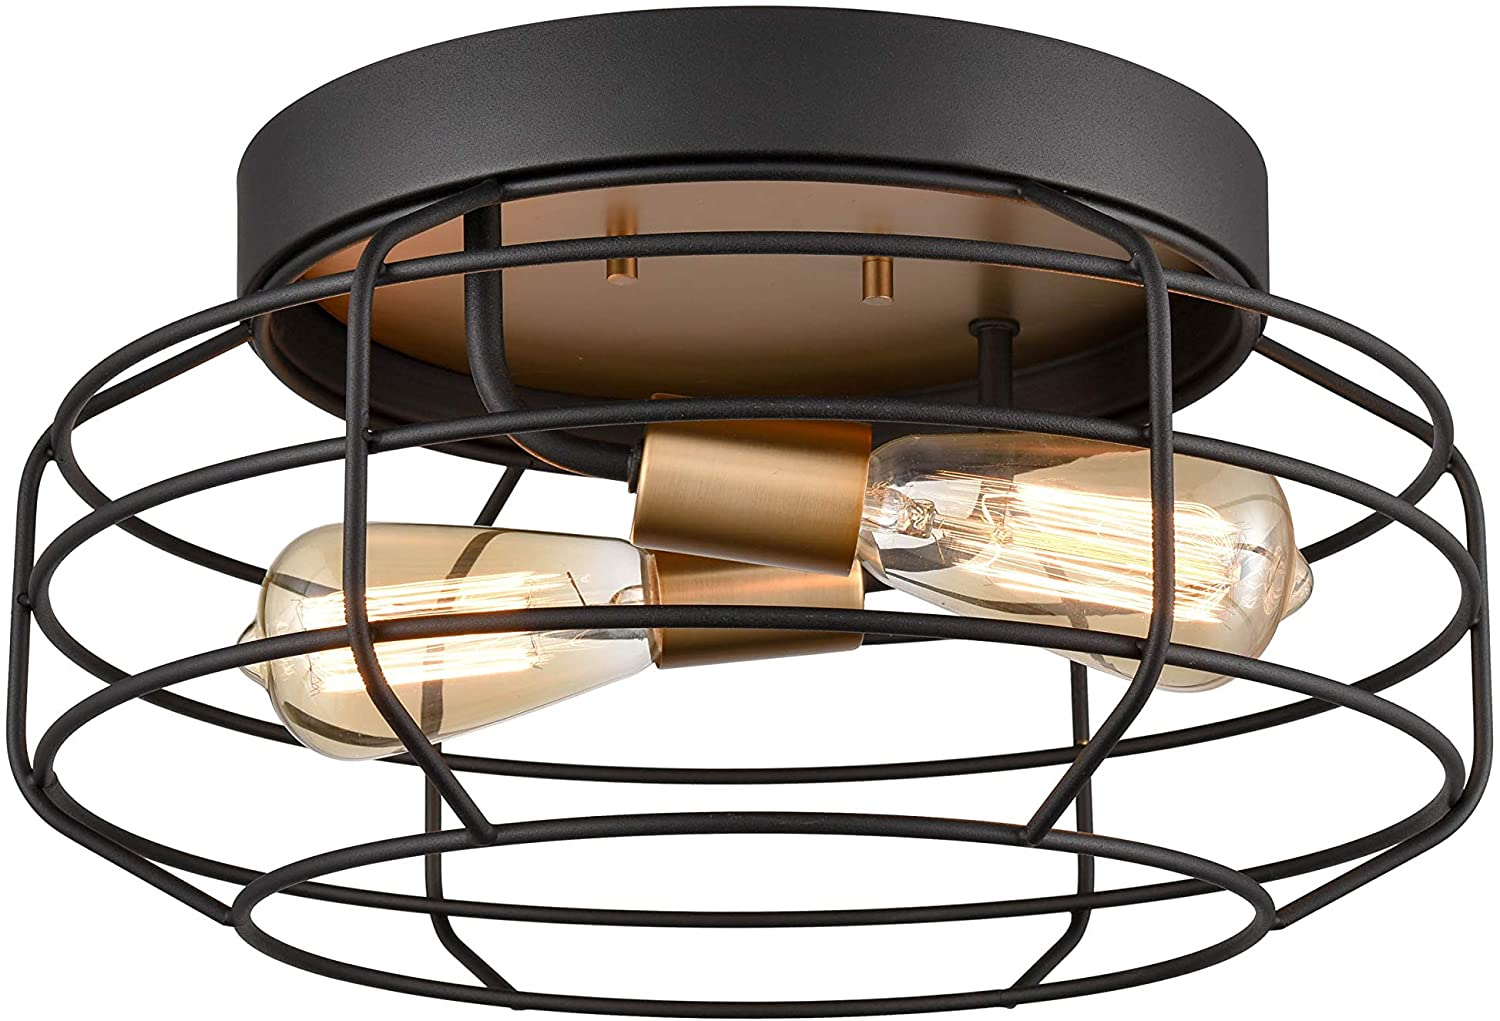 HUANXIN LIGHTING 2-Light Flush Mount Ceiling Light, Black and Gold, Irony Wire Shade